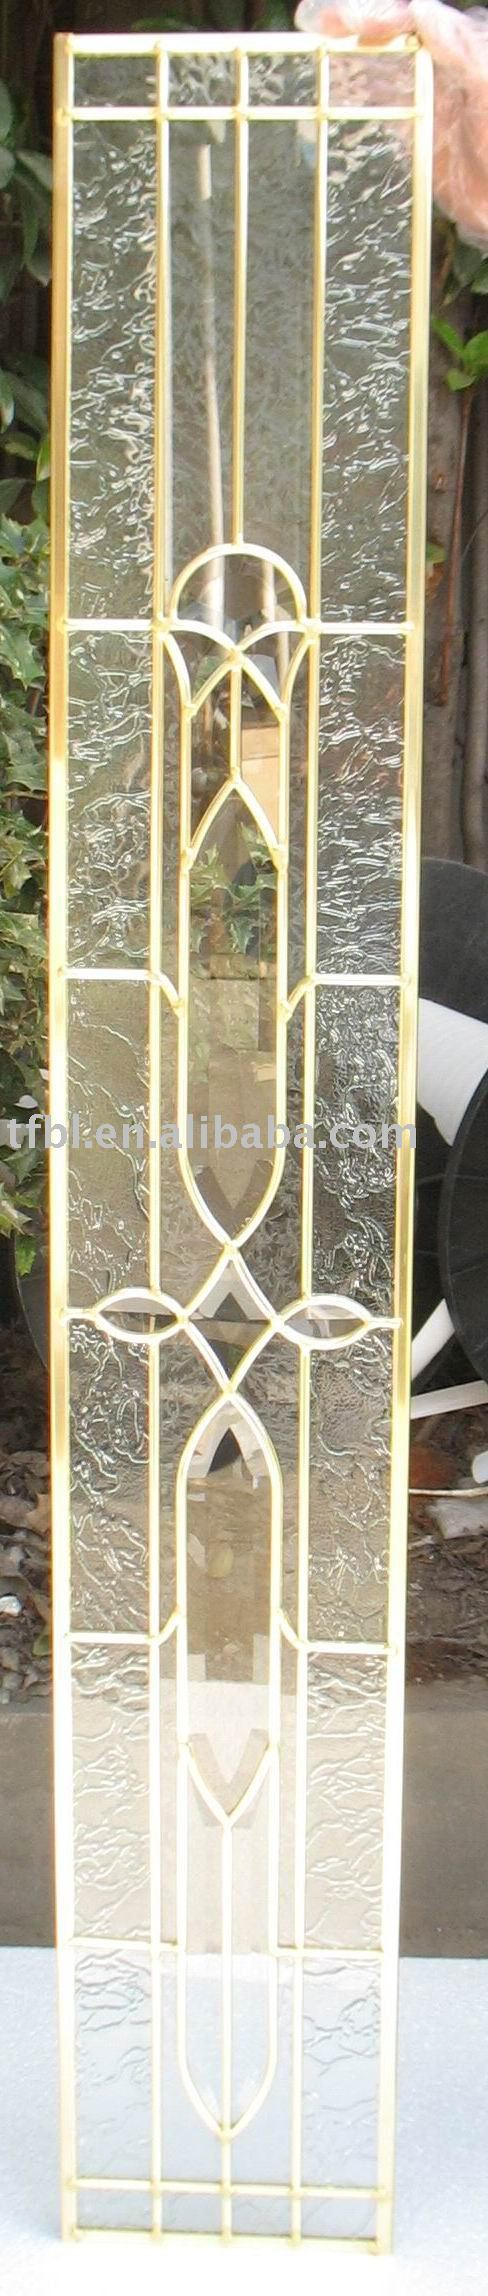 stained glass door inserts oval glass door inserts door glass inserts